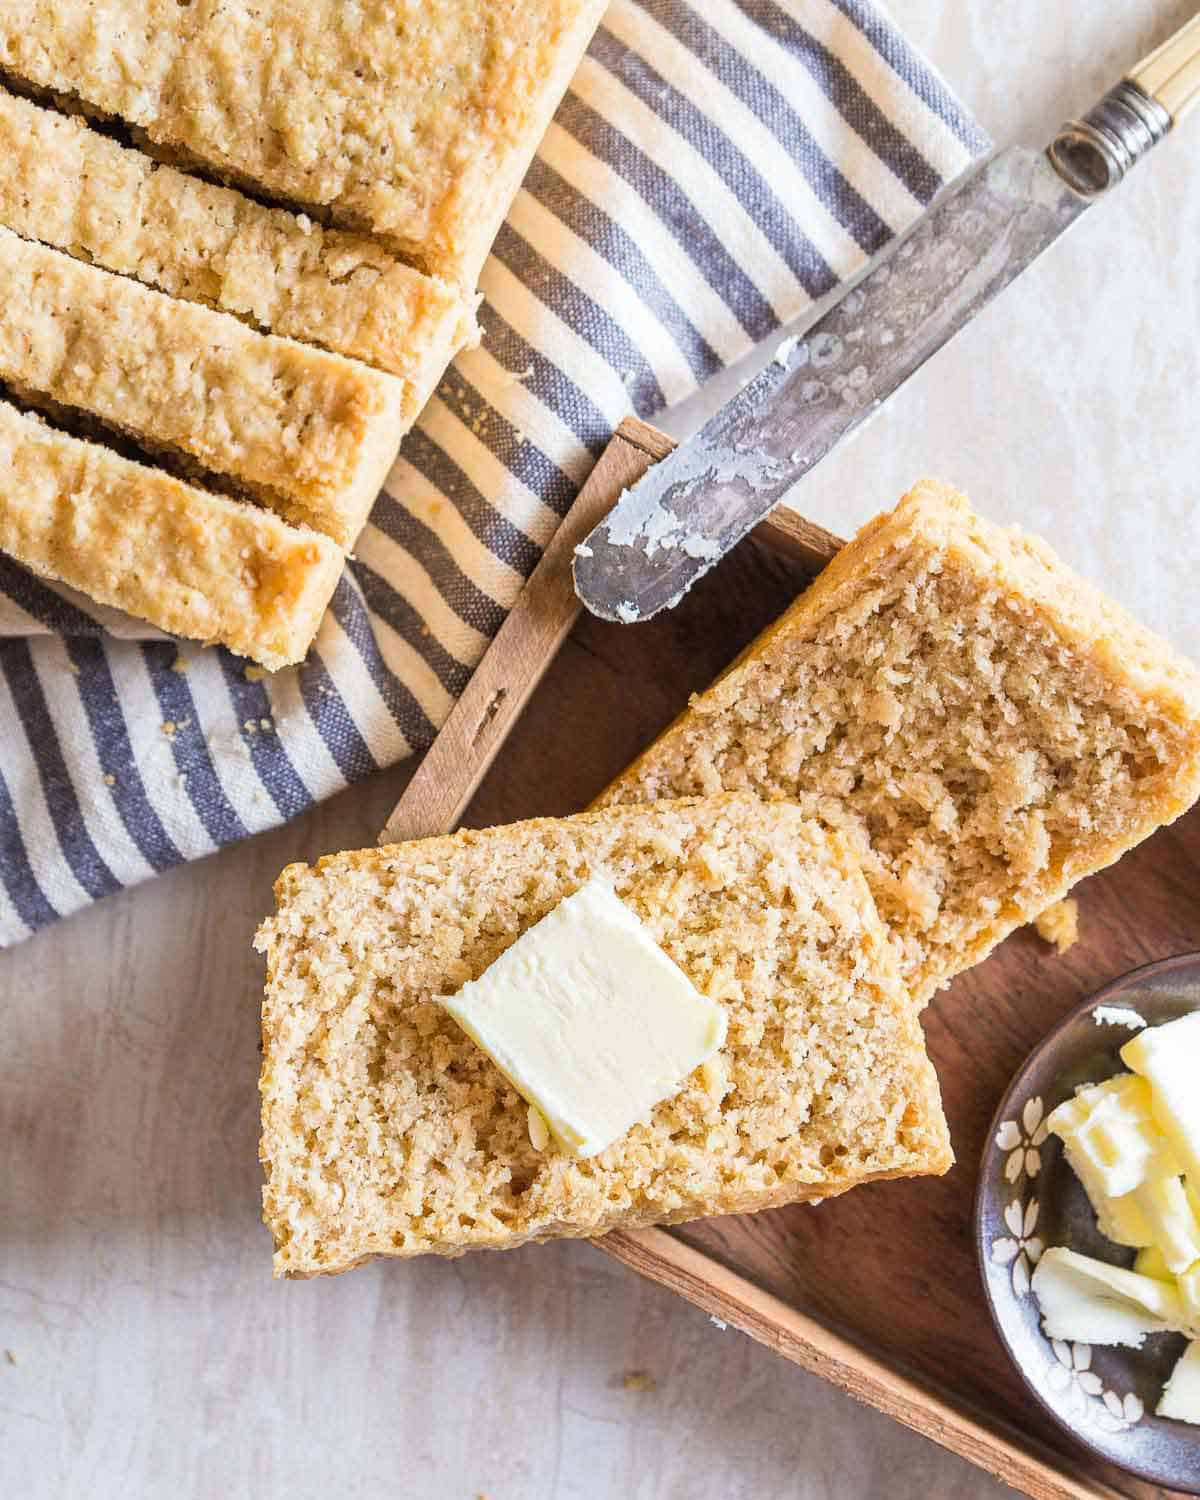 Learn how to make oat bread with this simple recipe.